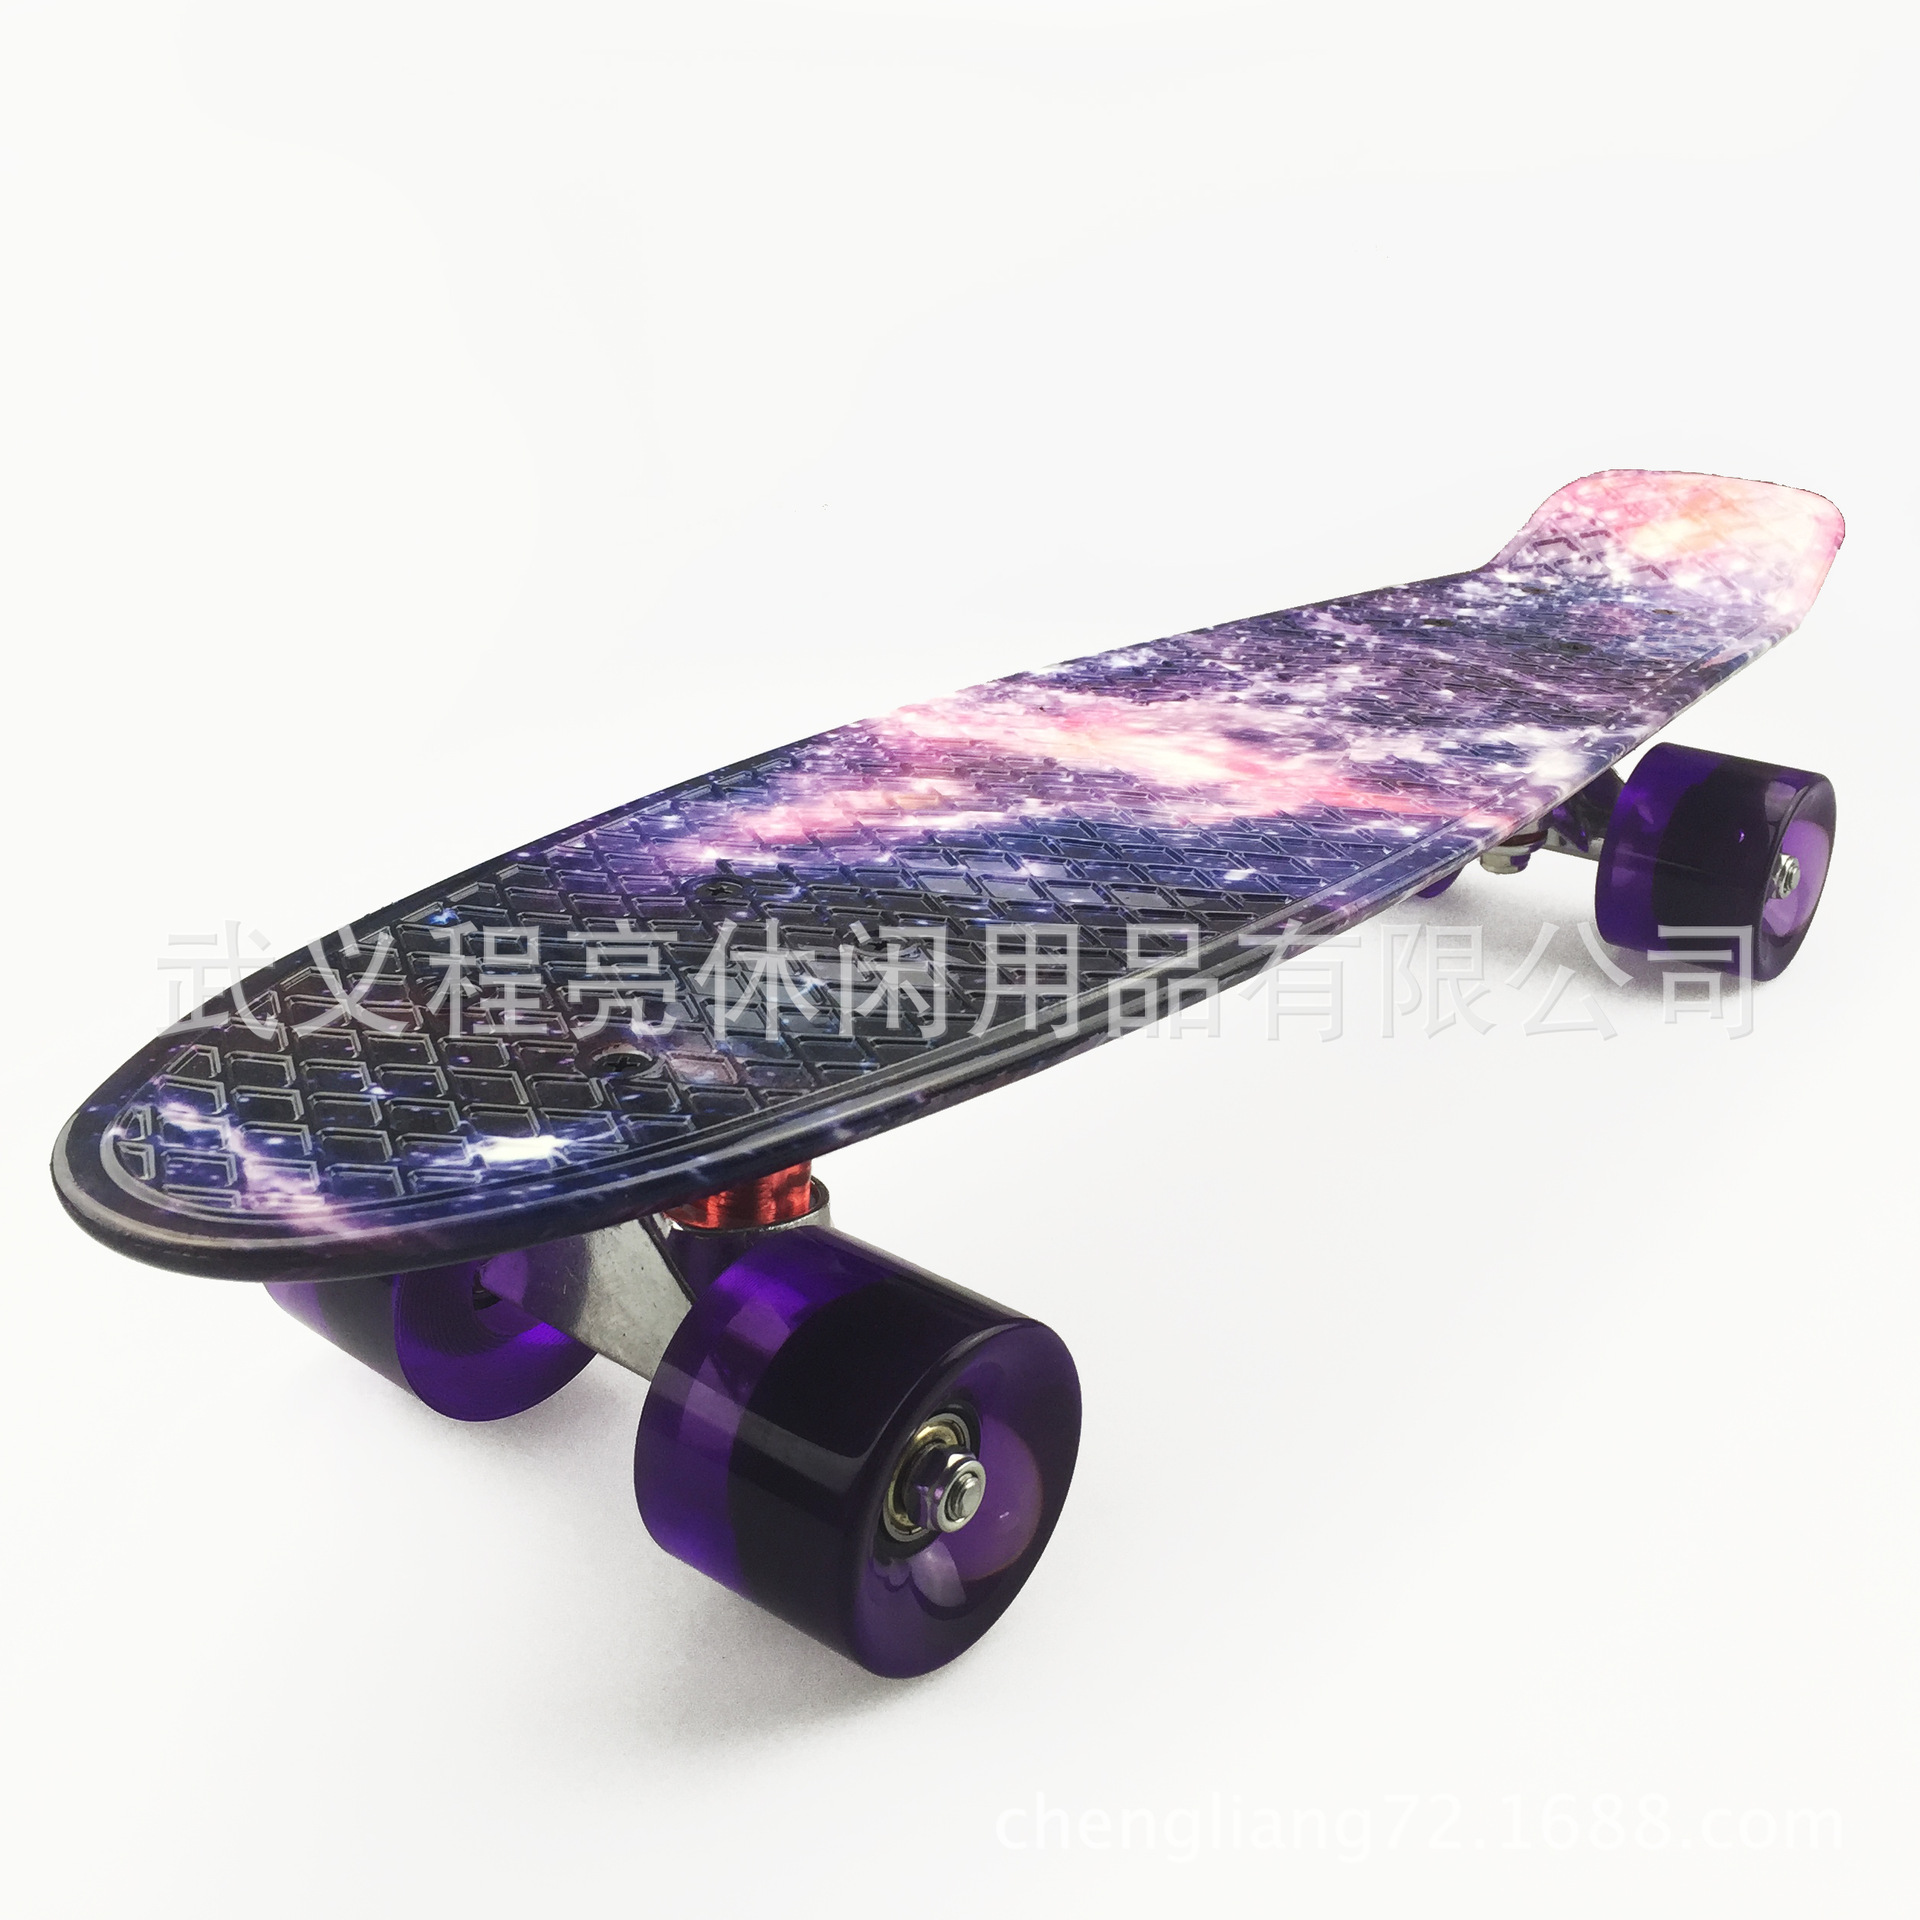 Foreign Trade Single Cut Skateboard PP Material Plastic Slide Plate 22-Inch Four Wheel Skateboard Fish Skateboard Adult Skateboa